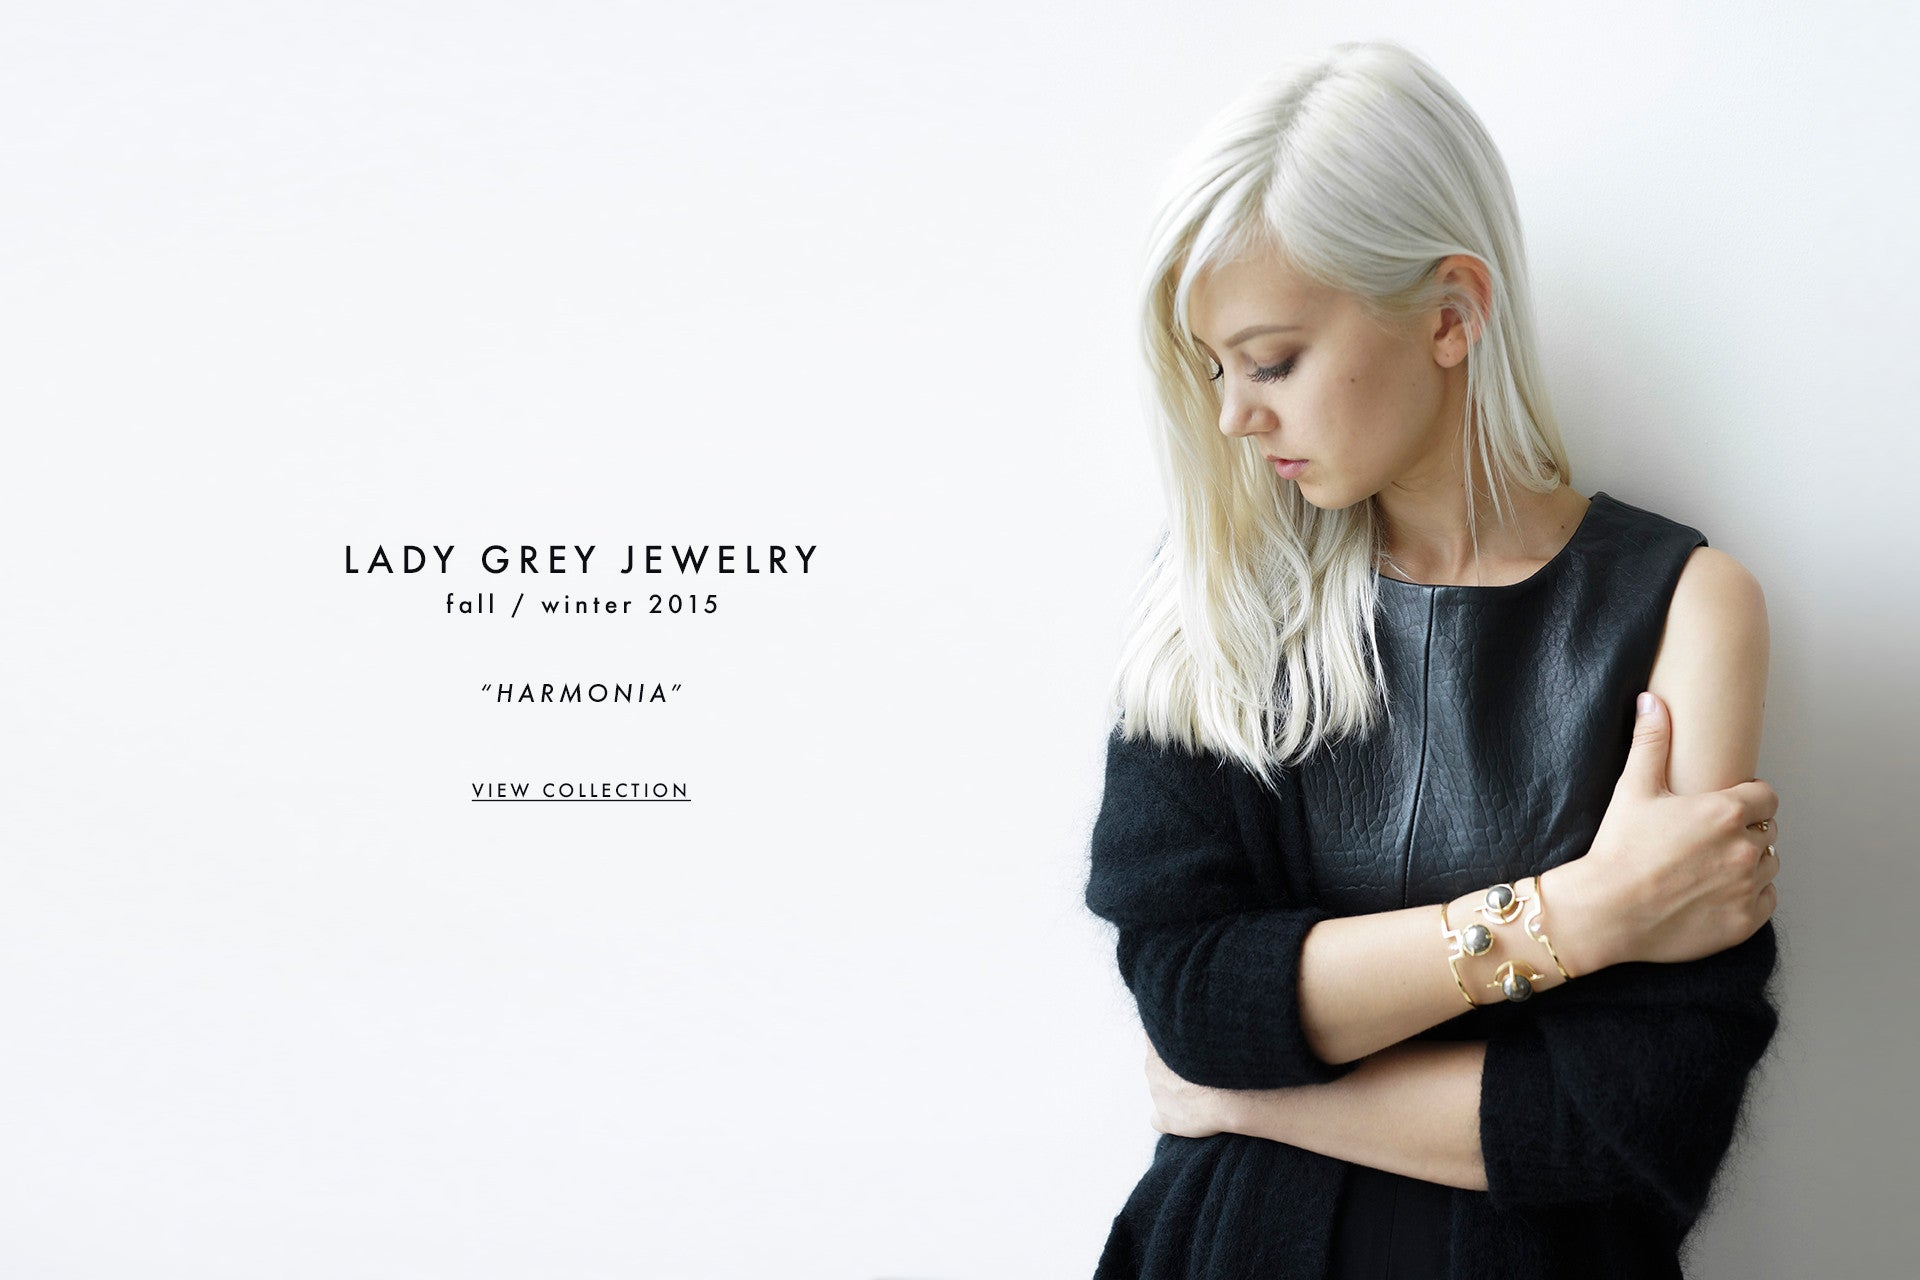 Lady Grey Jewelry Fall 2015 Harmonia Collection